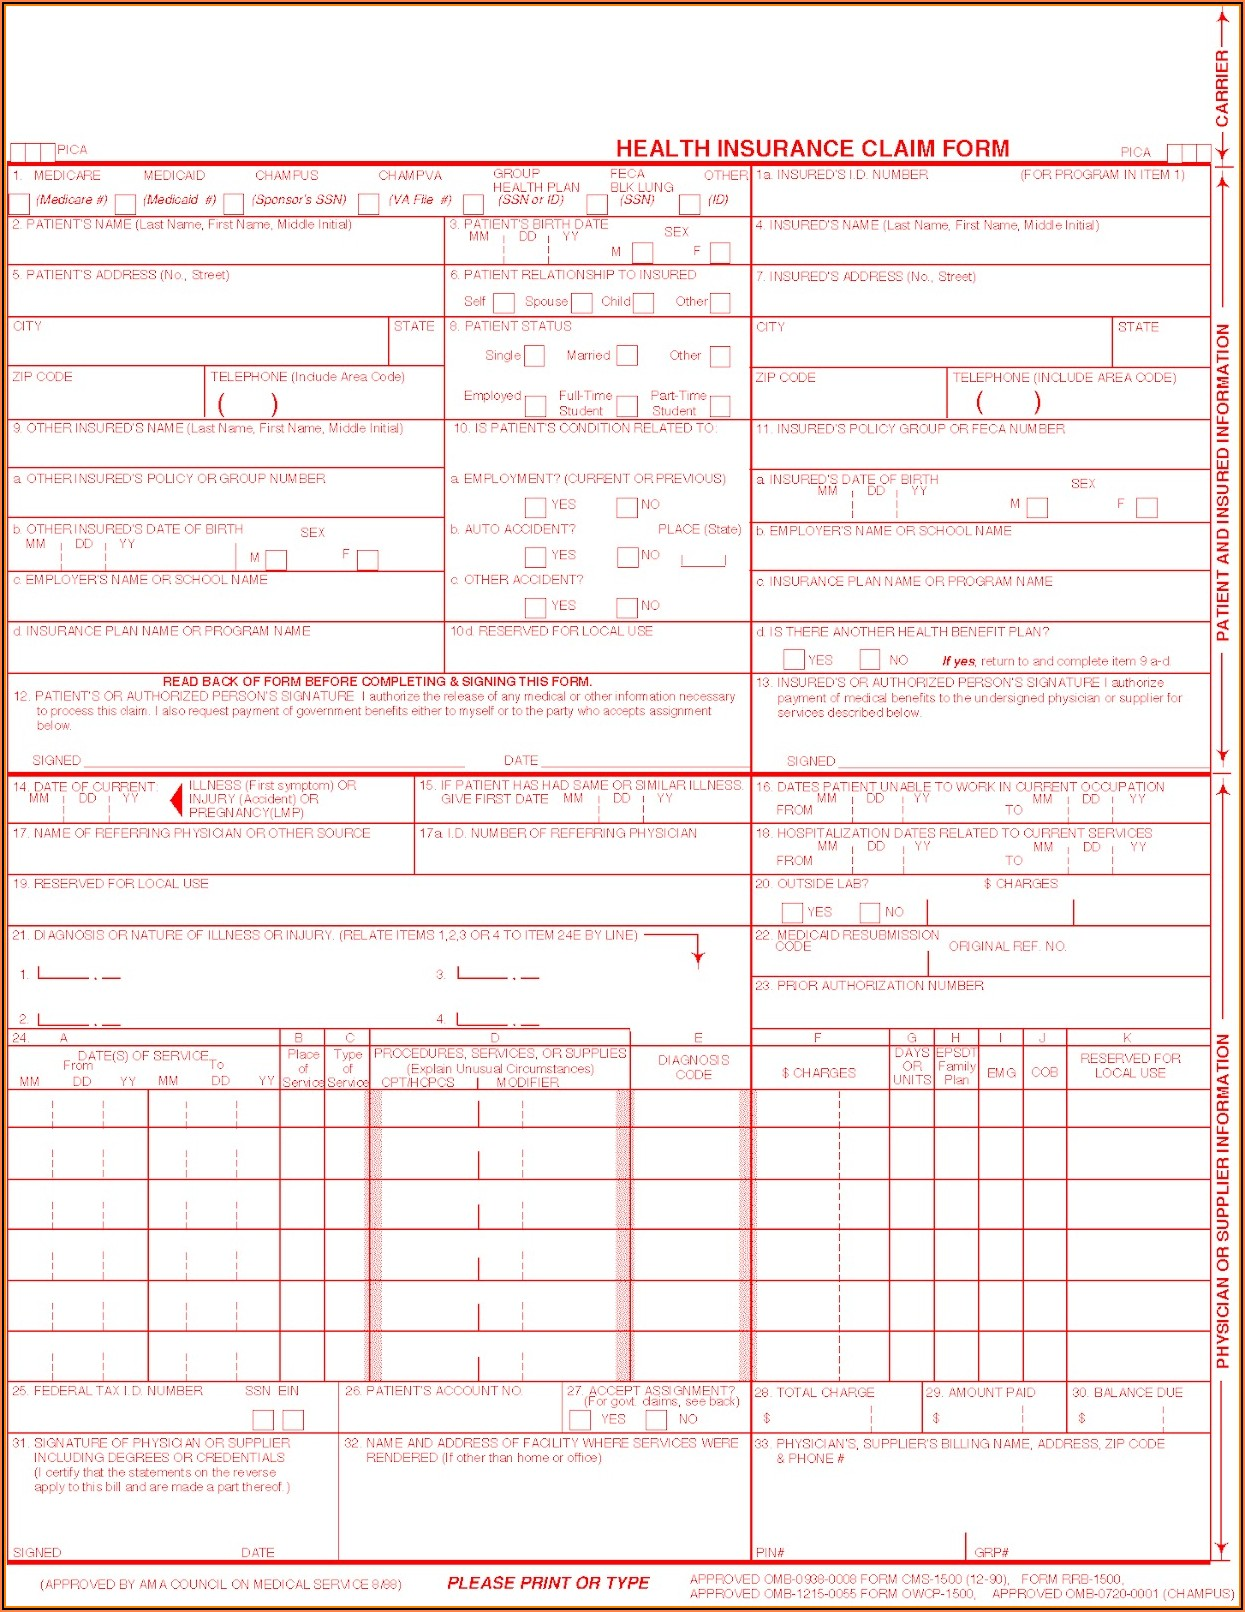 Health Insurance Claim Form 1500 Fillable Free